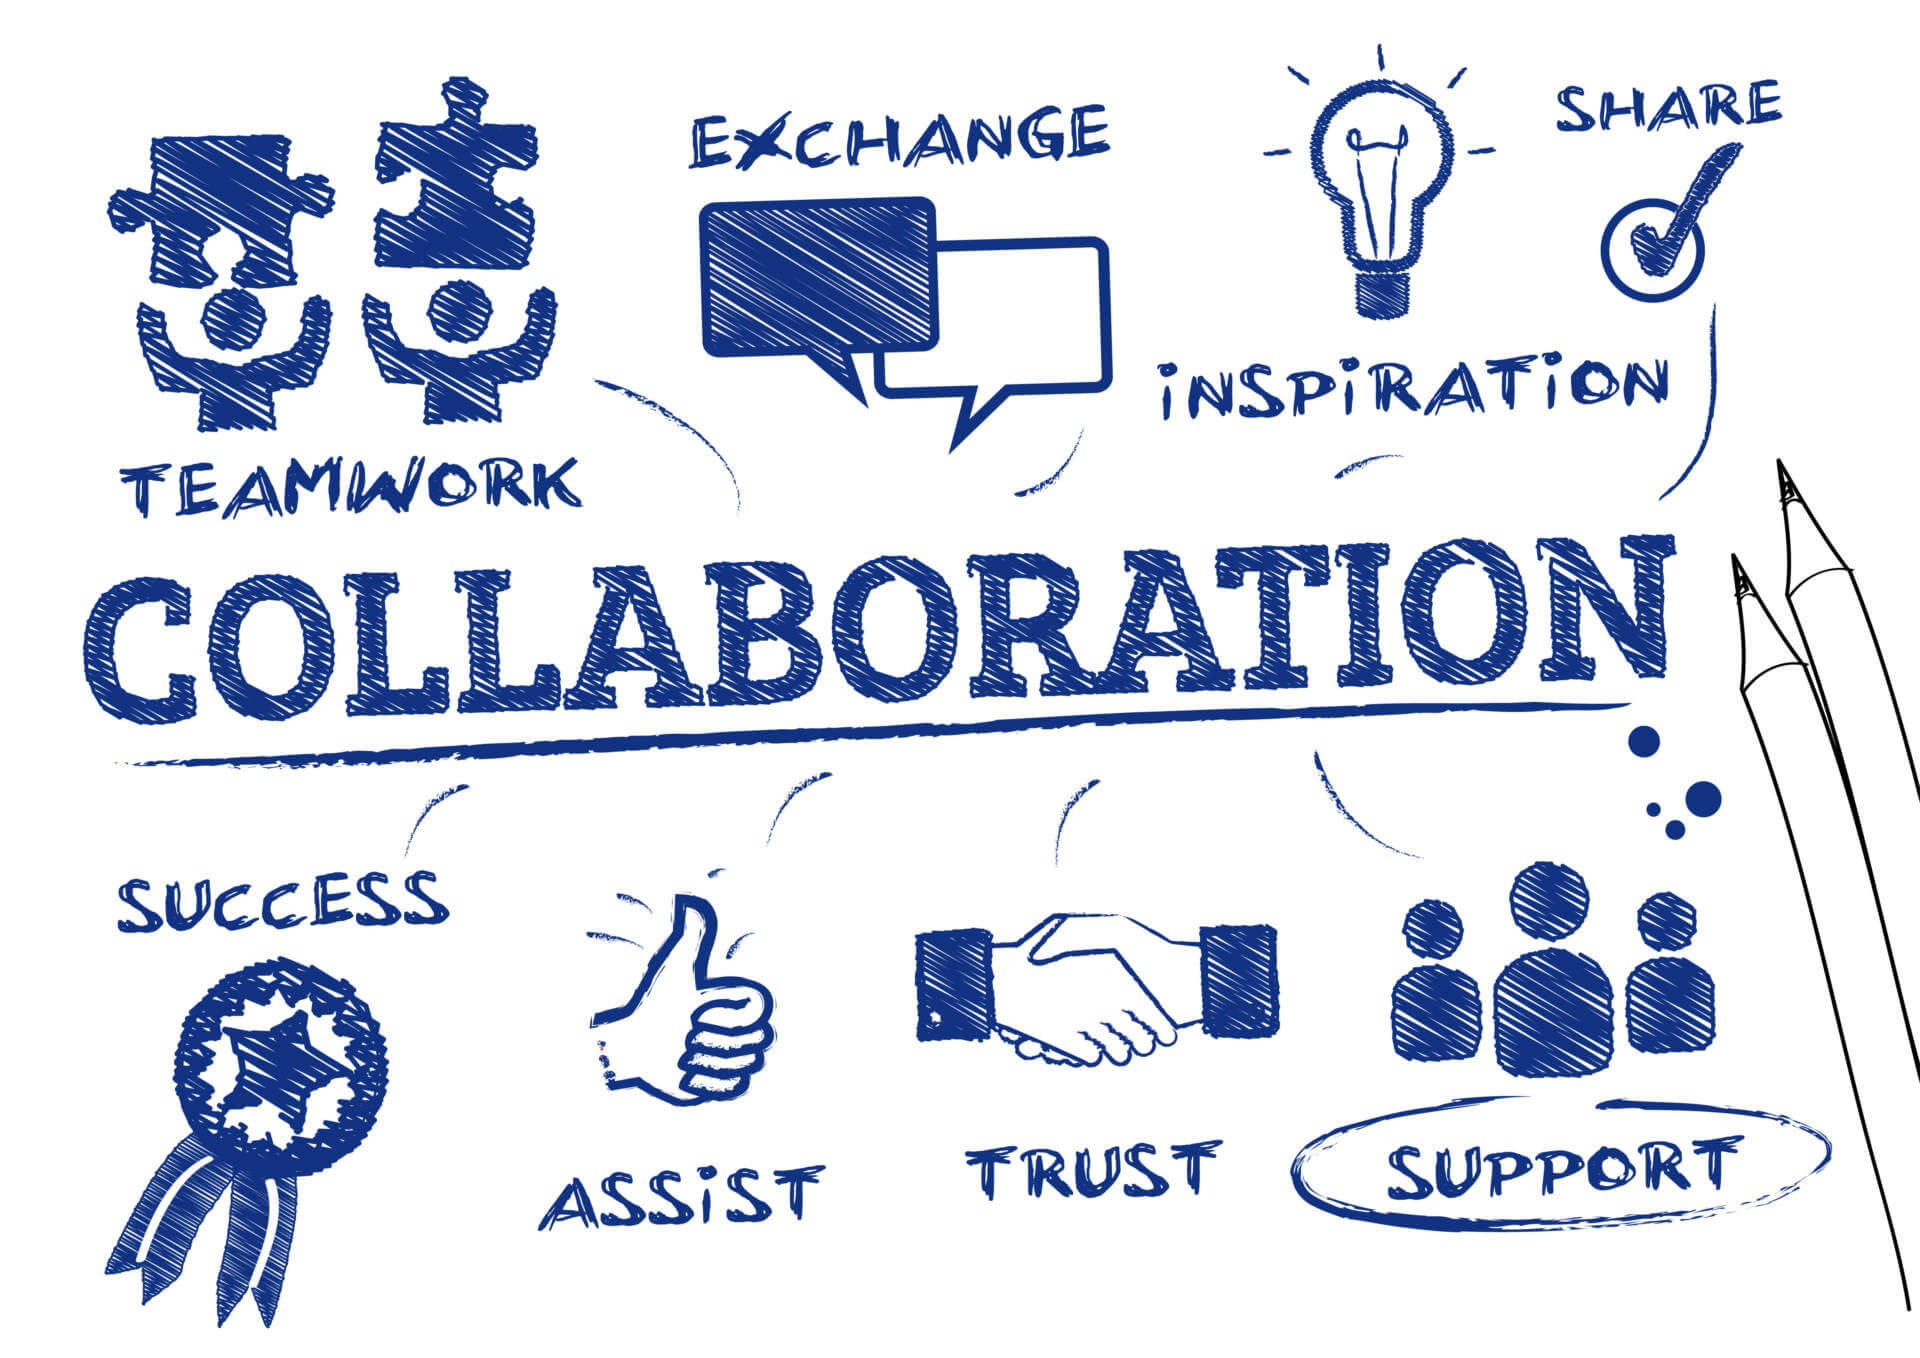 Safe Place for Collaboration